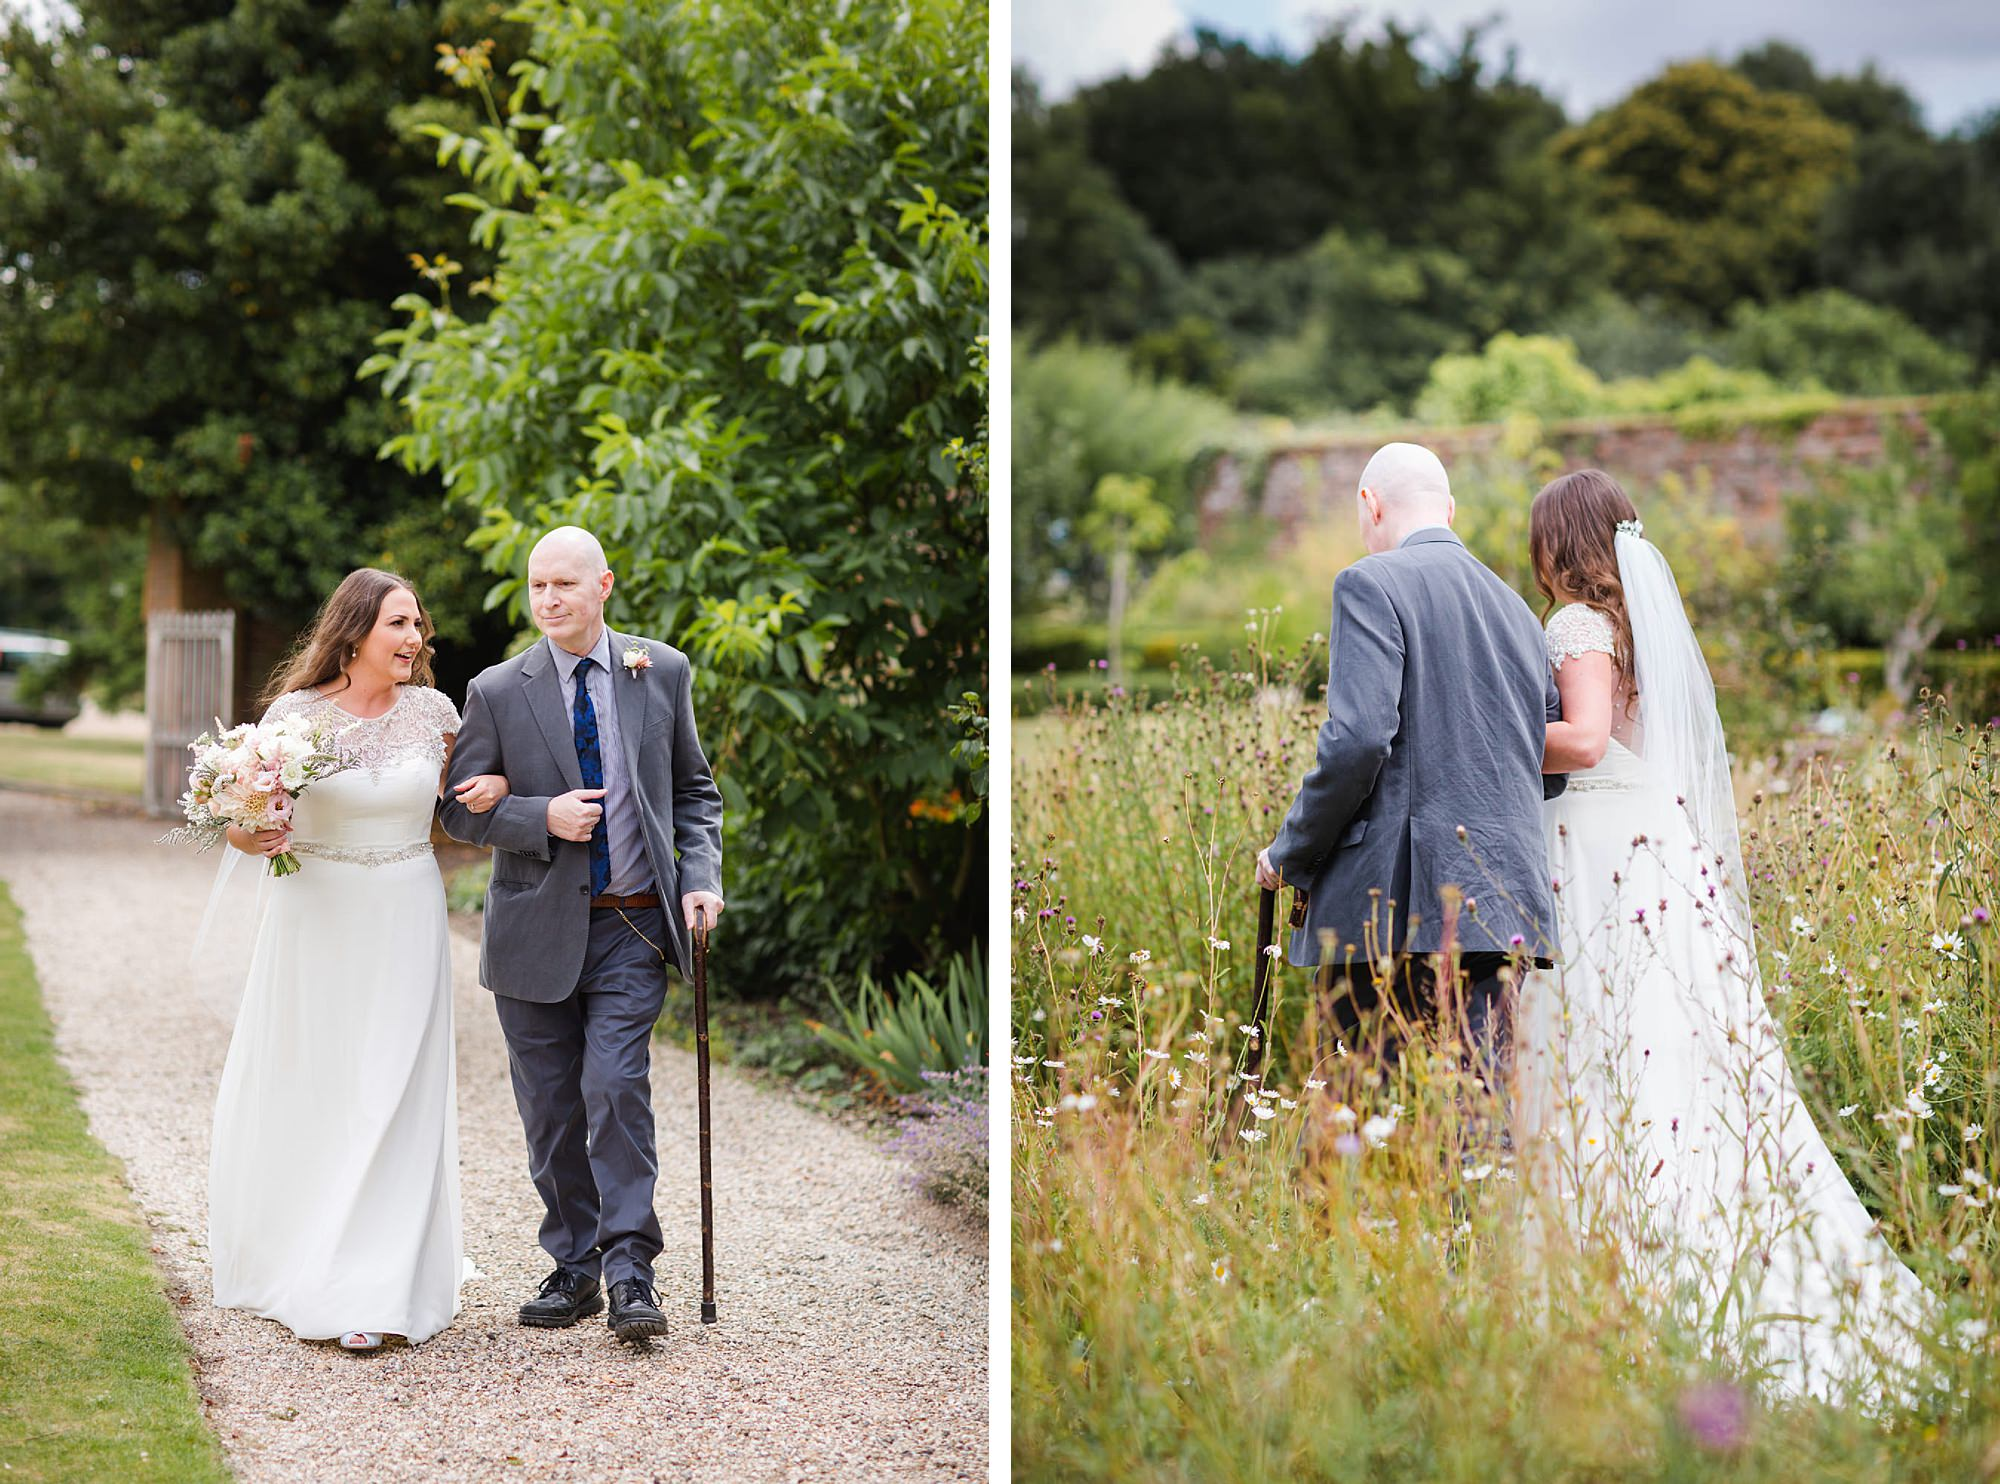 fun outdoor wedding bride and her father walk down aisle